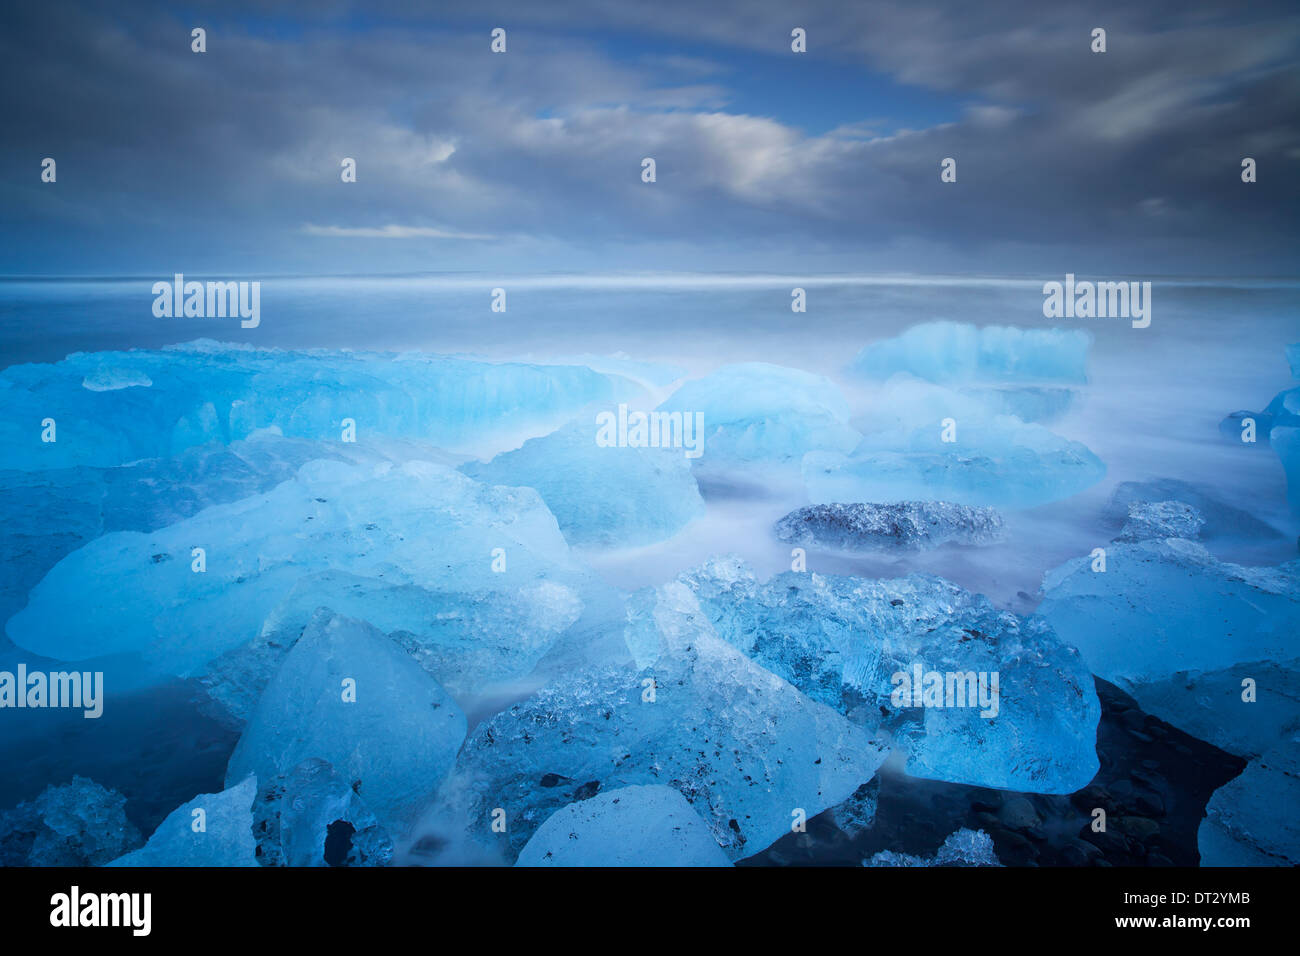 IceBergs and waves on Jokulsarlon Beach, Polar region, South Iceland - Stock Image